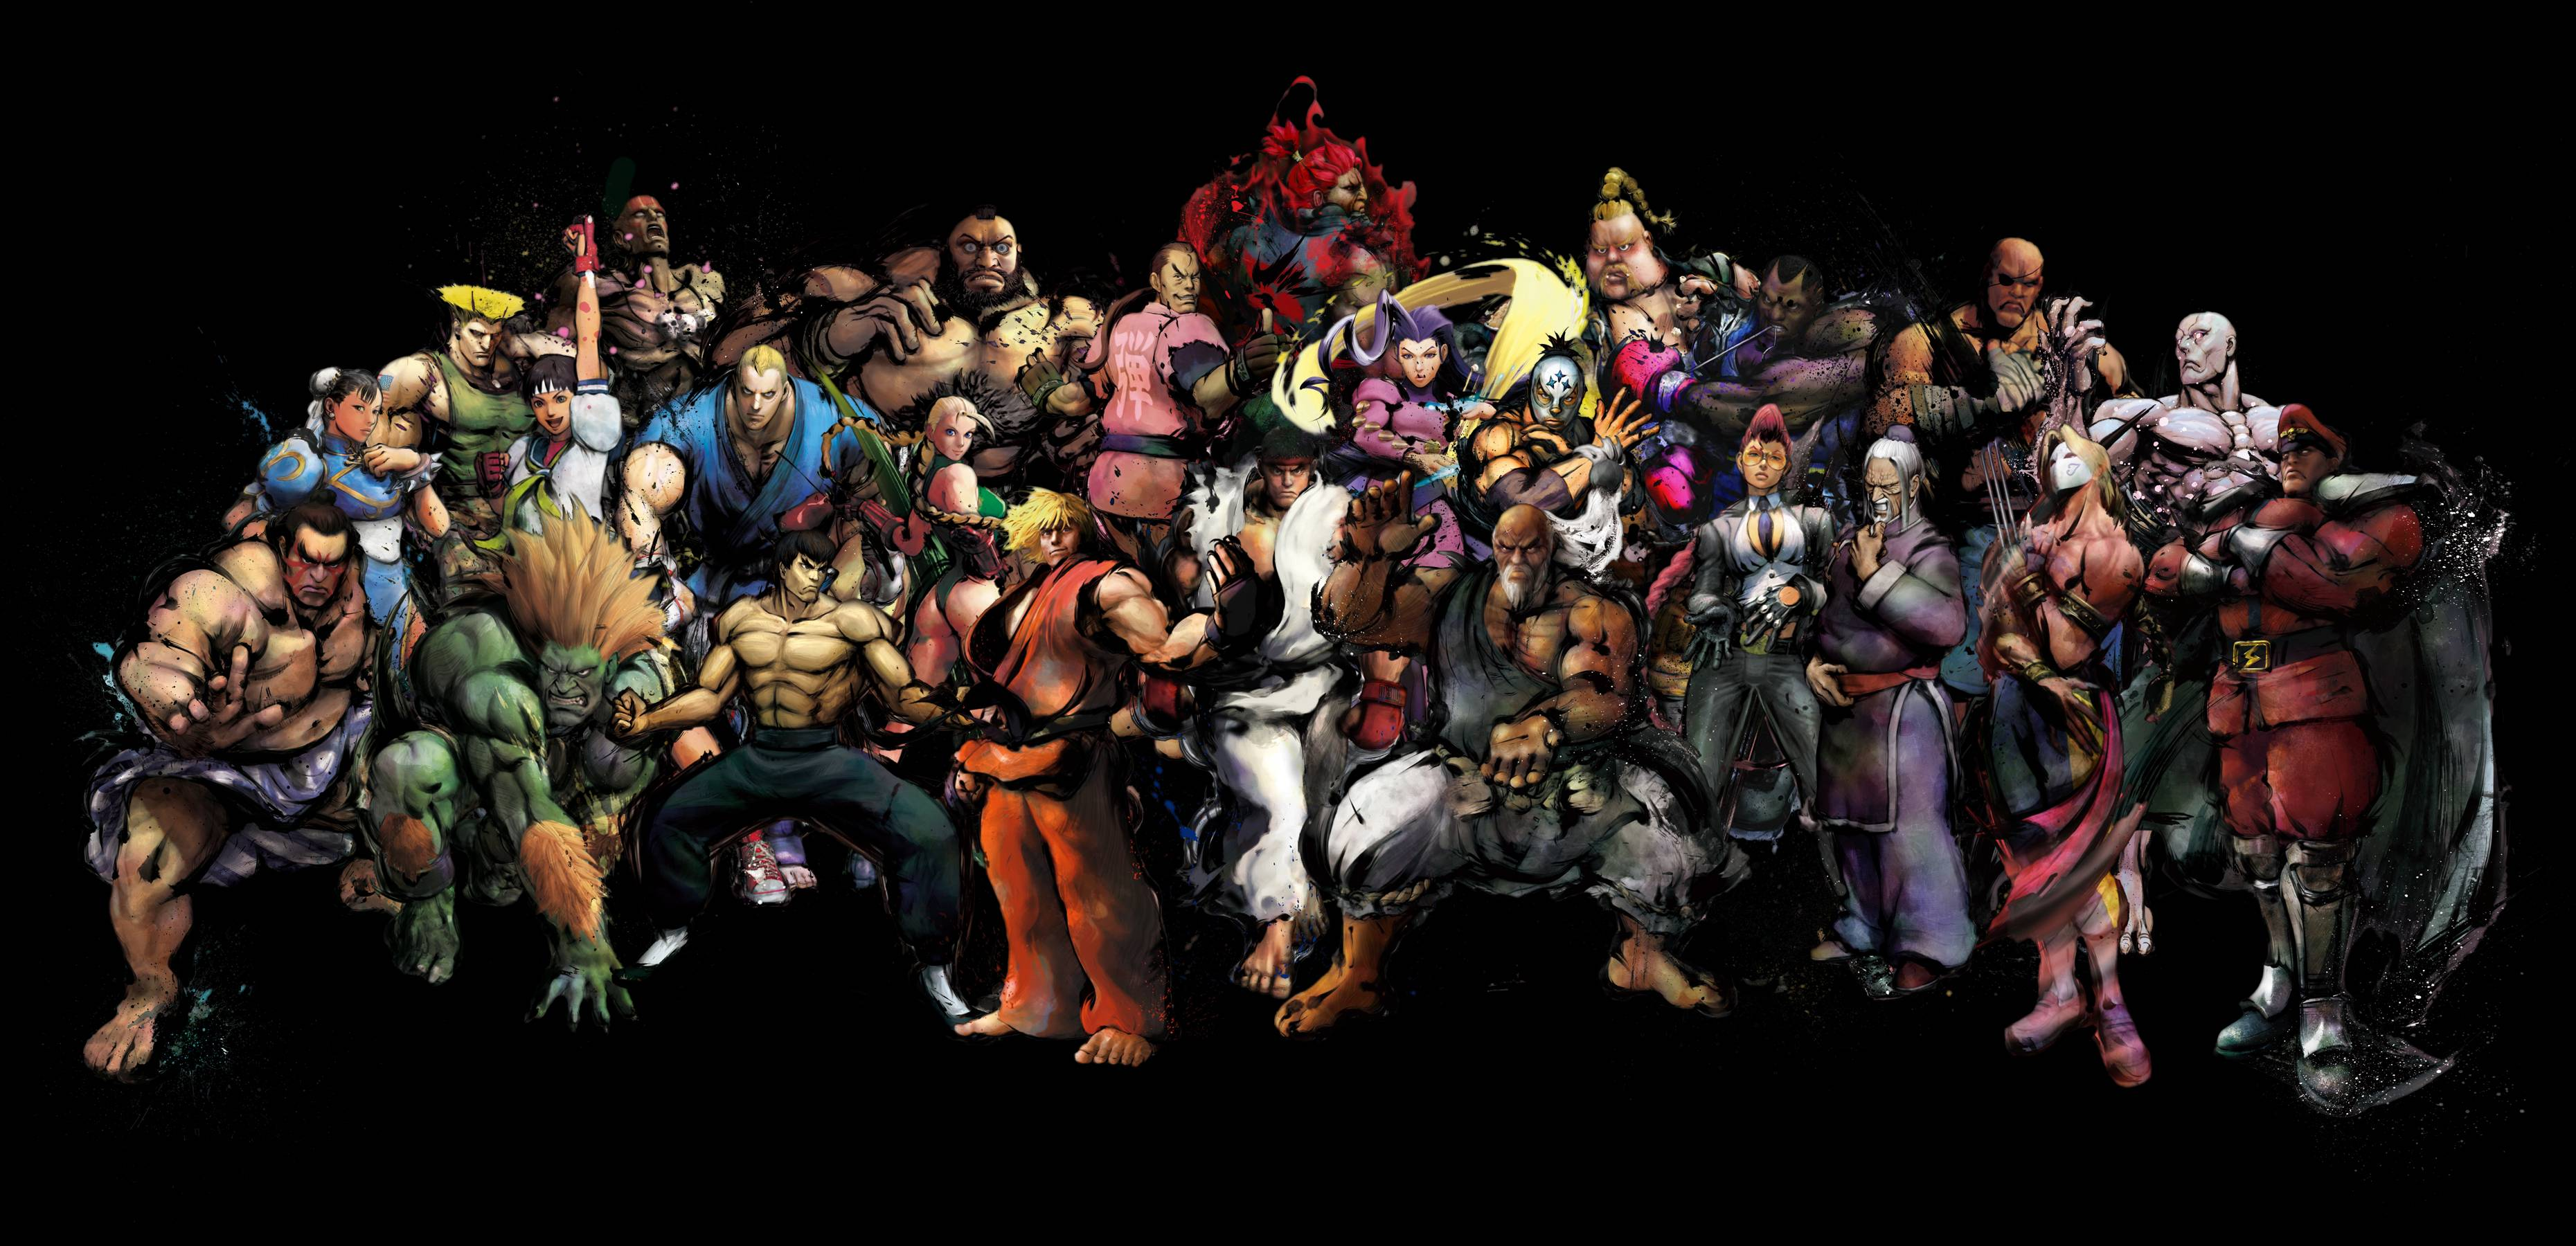 shadowloo street fighter wallpaper - photo #49